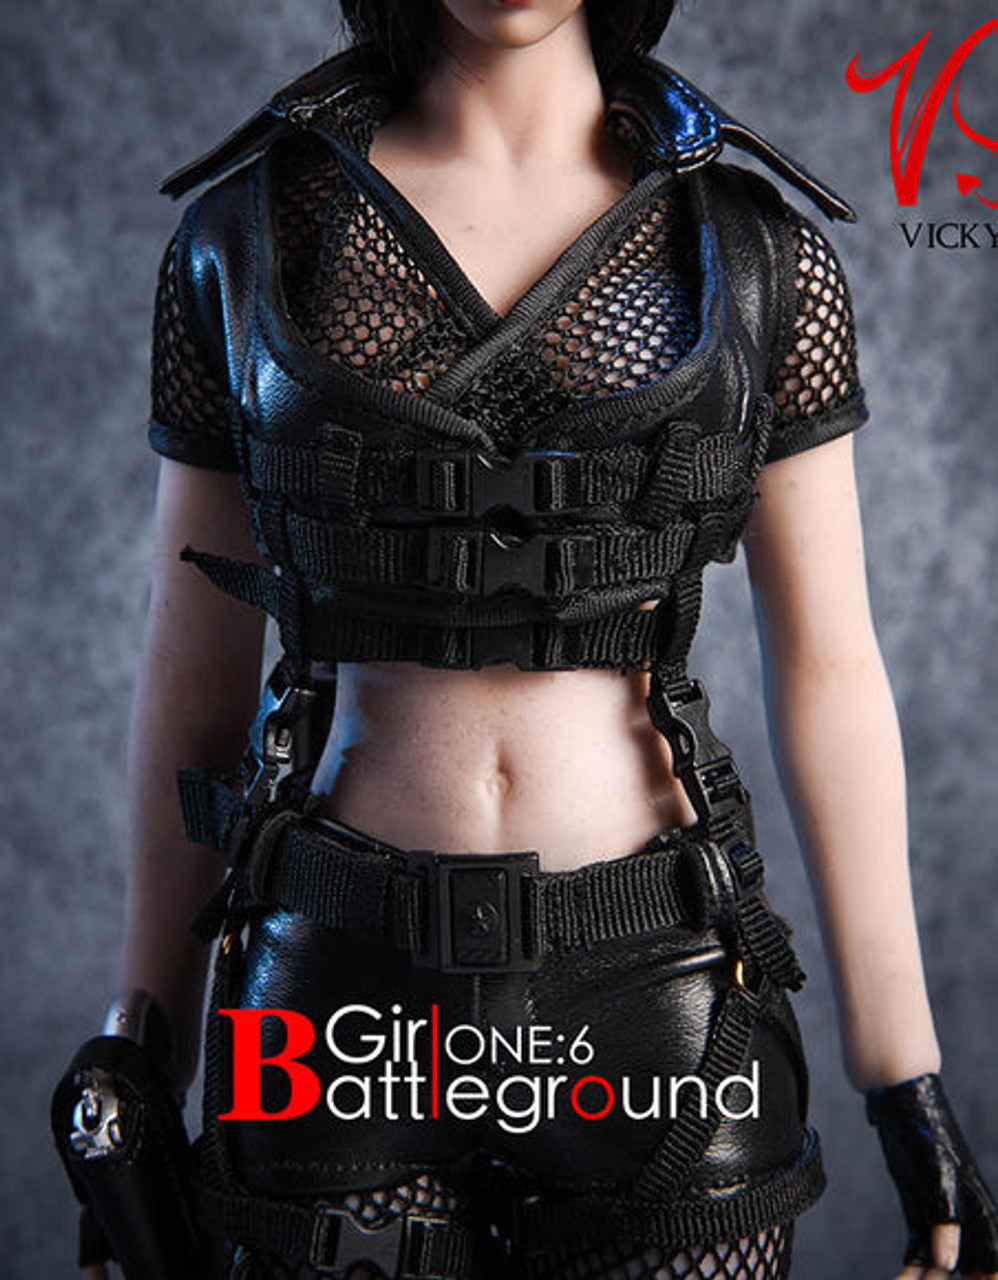 """Vstoys 18XG13A 1//6 Battlefield Girl Clothing Accessories F 12/"""" Female Figure Toy"""